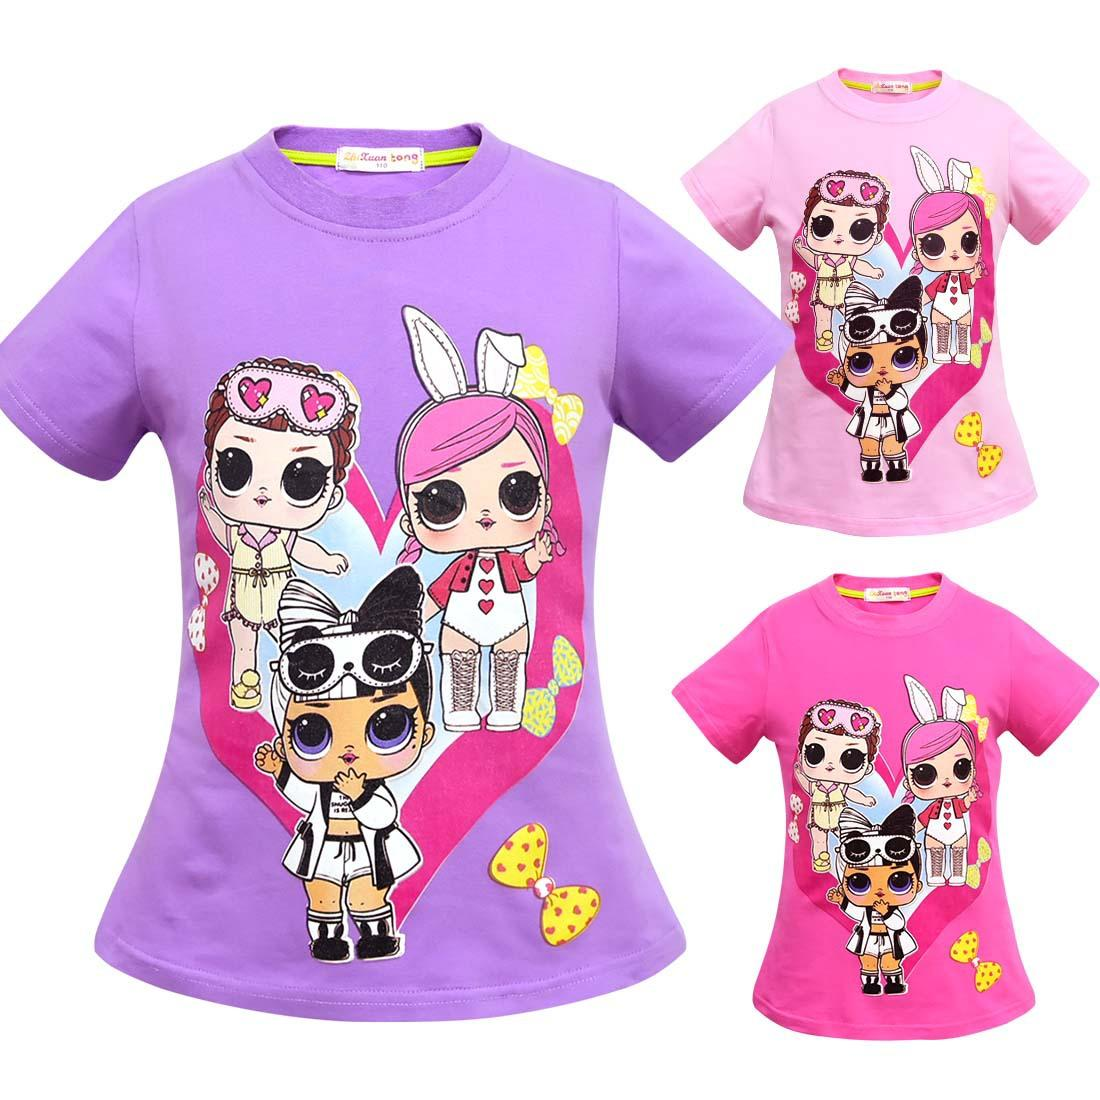 f1dc3f55b Kid Surprise T Shirt Summer Cotton Tees Short Sleeve Boys Girls Top ...